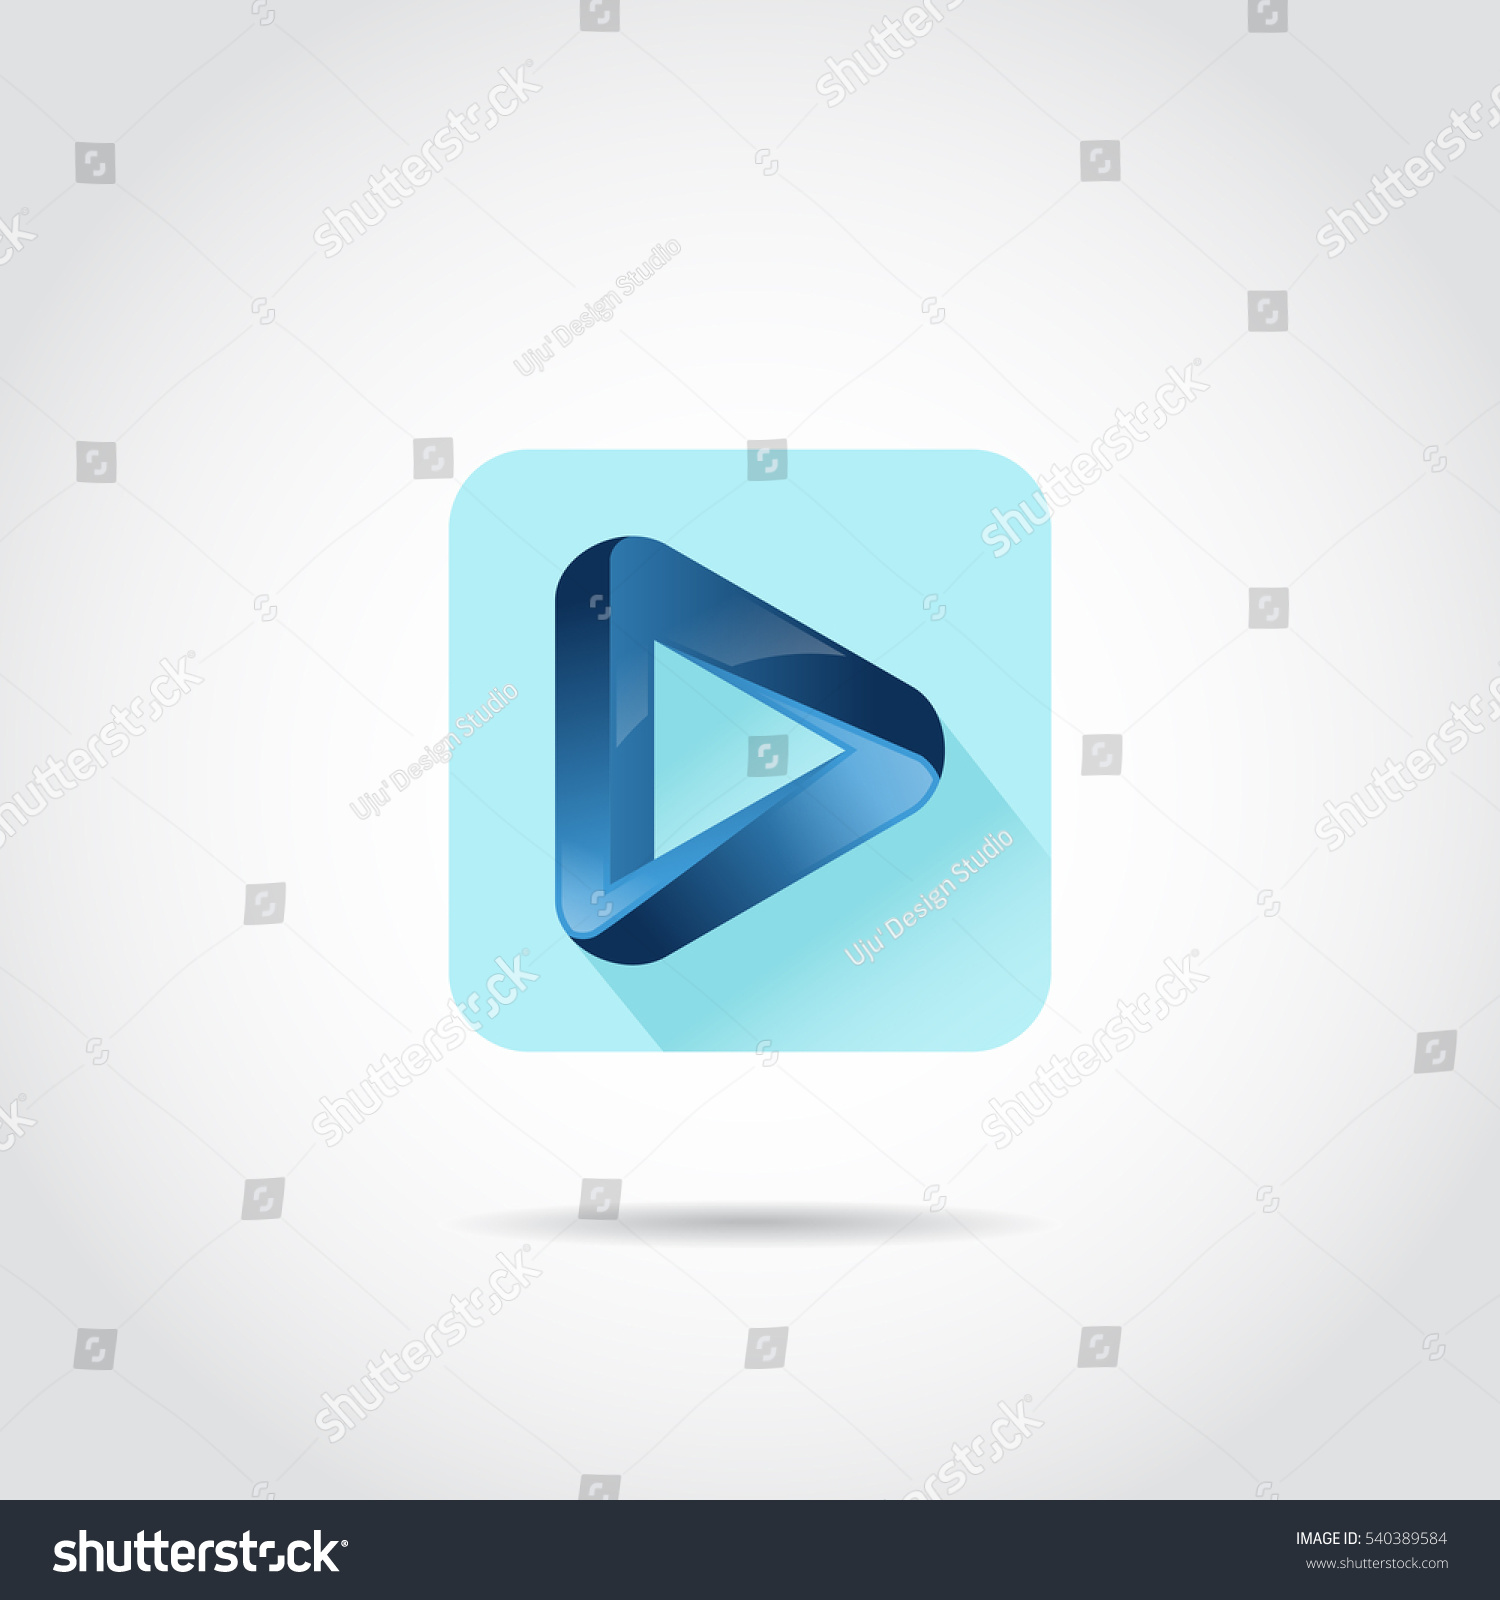 3d blue play icon apps android stock vector 540389584 shutterstock 3d blue play icon for apps android or iphone vector illutrator eps10 buycottarizona